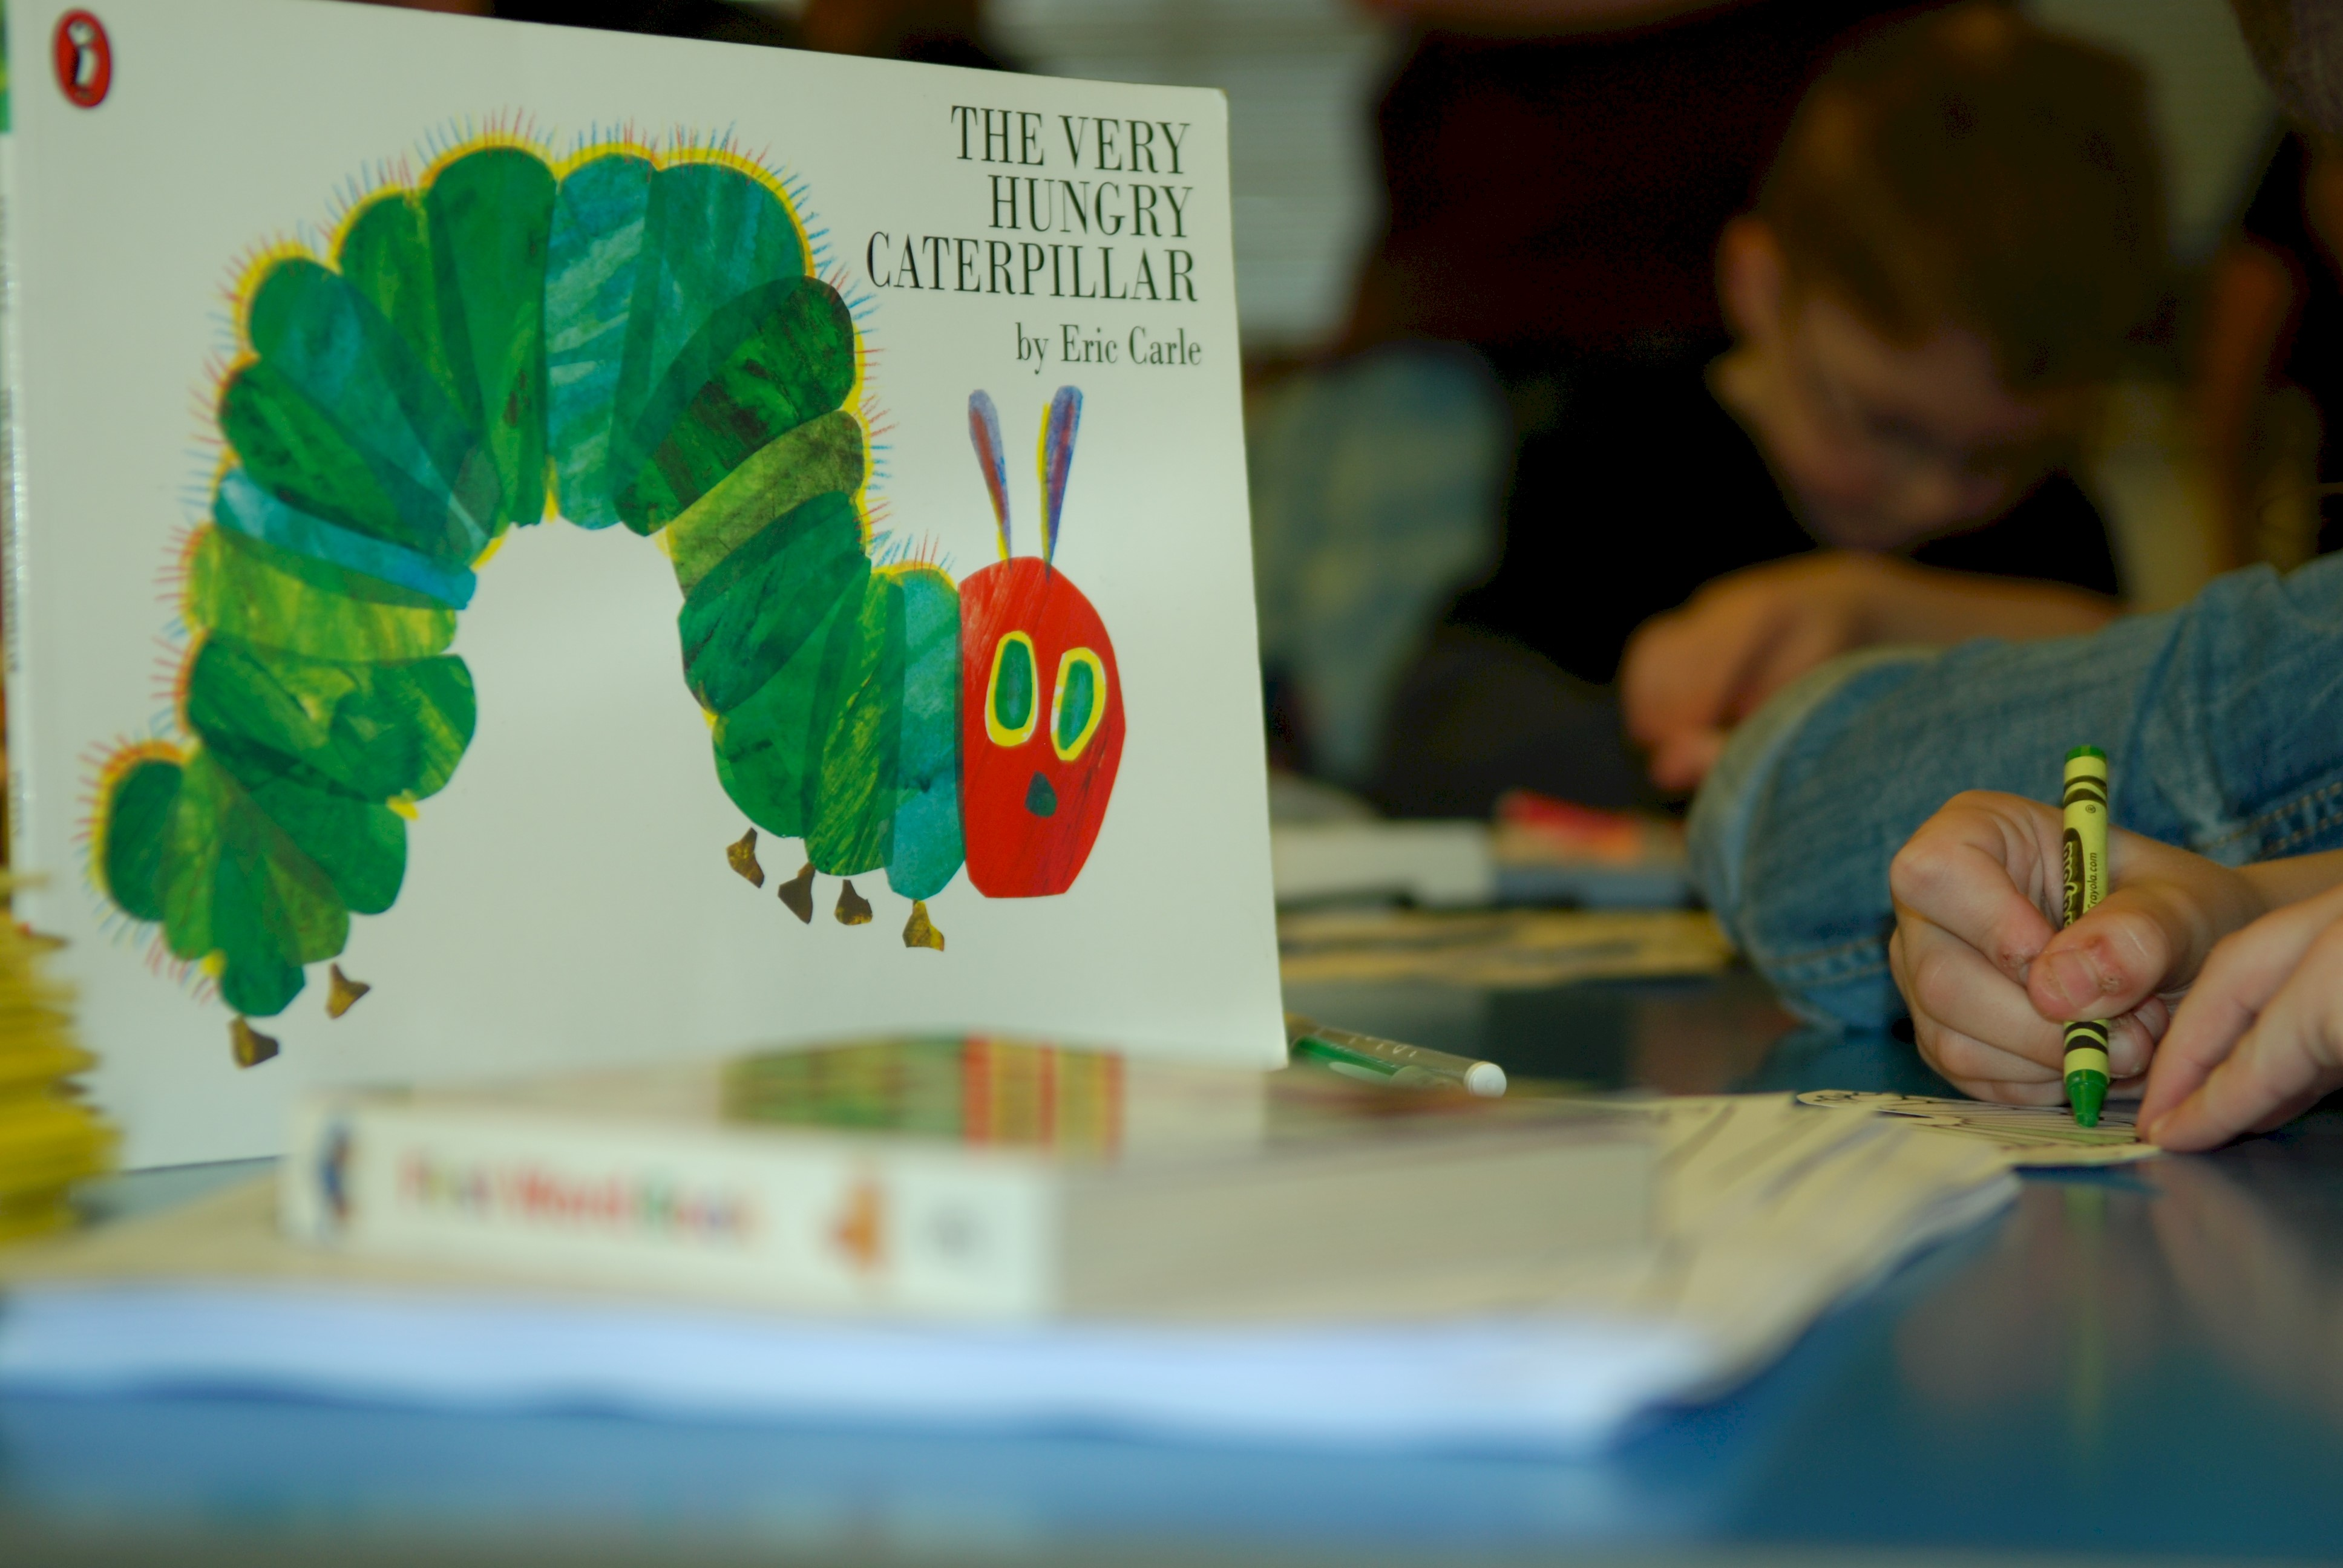 The hungry caterpillar book